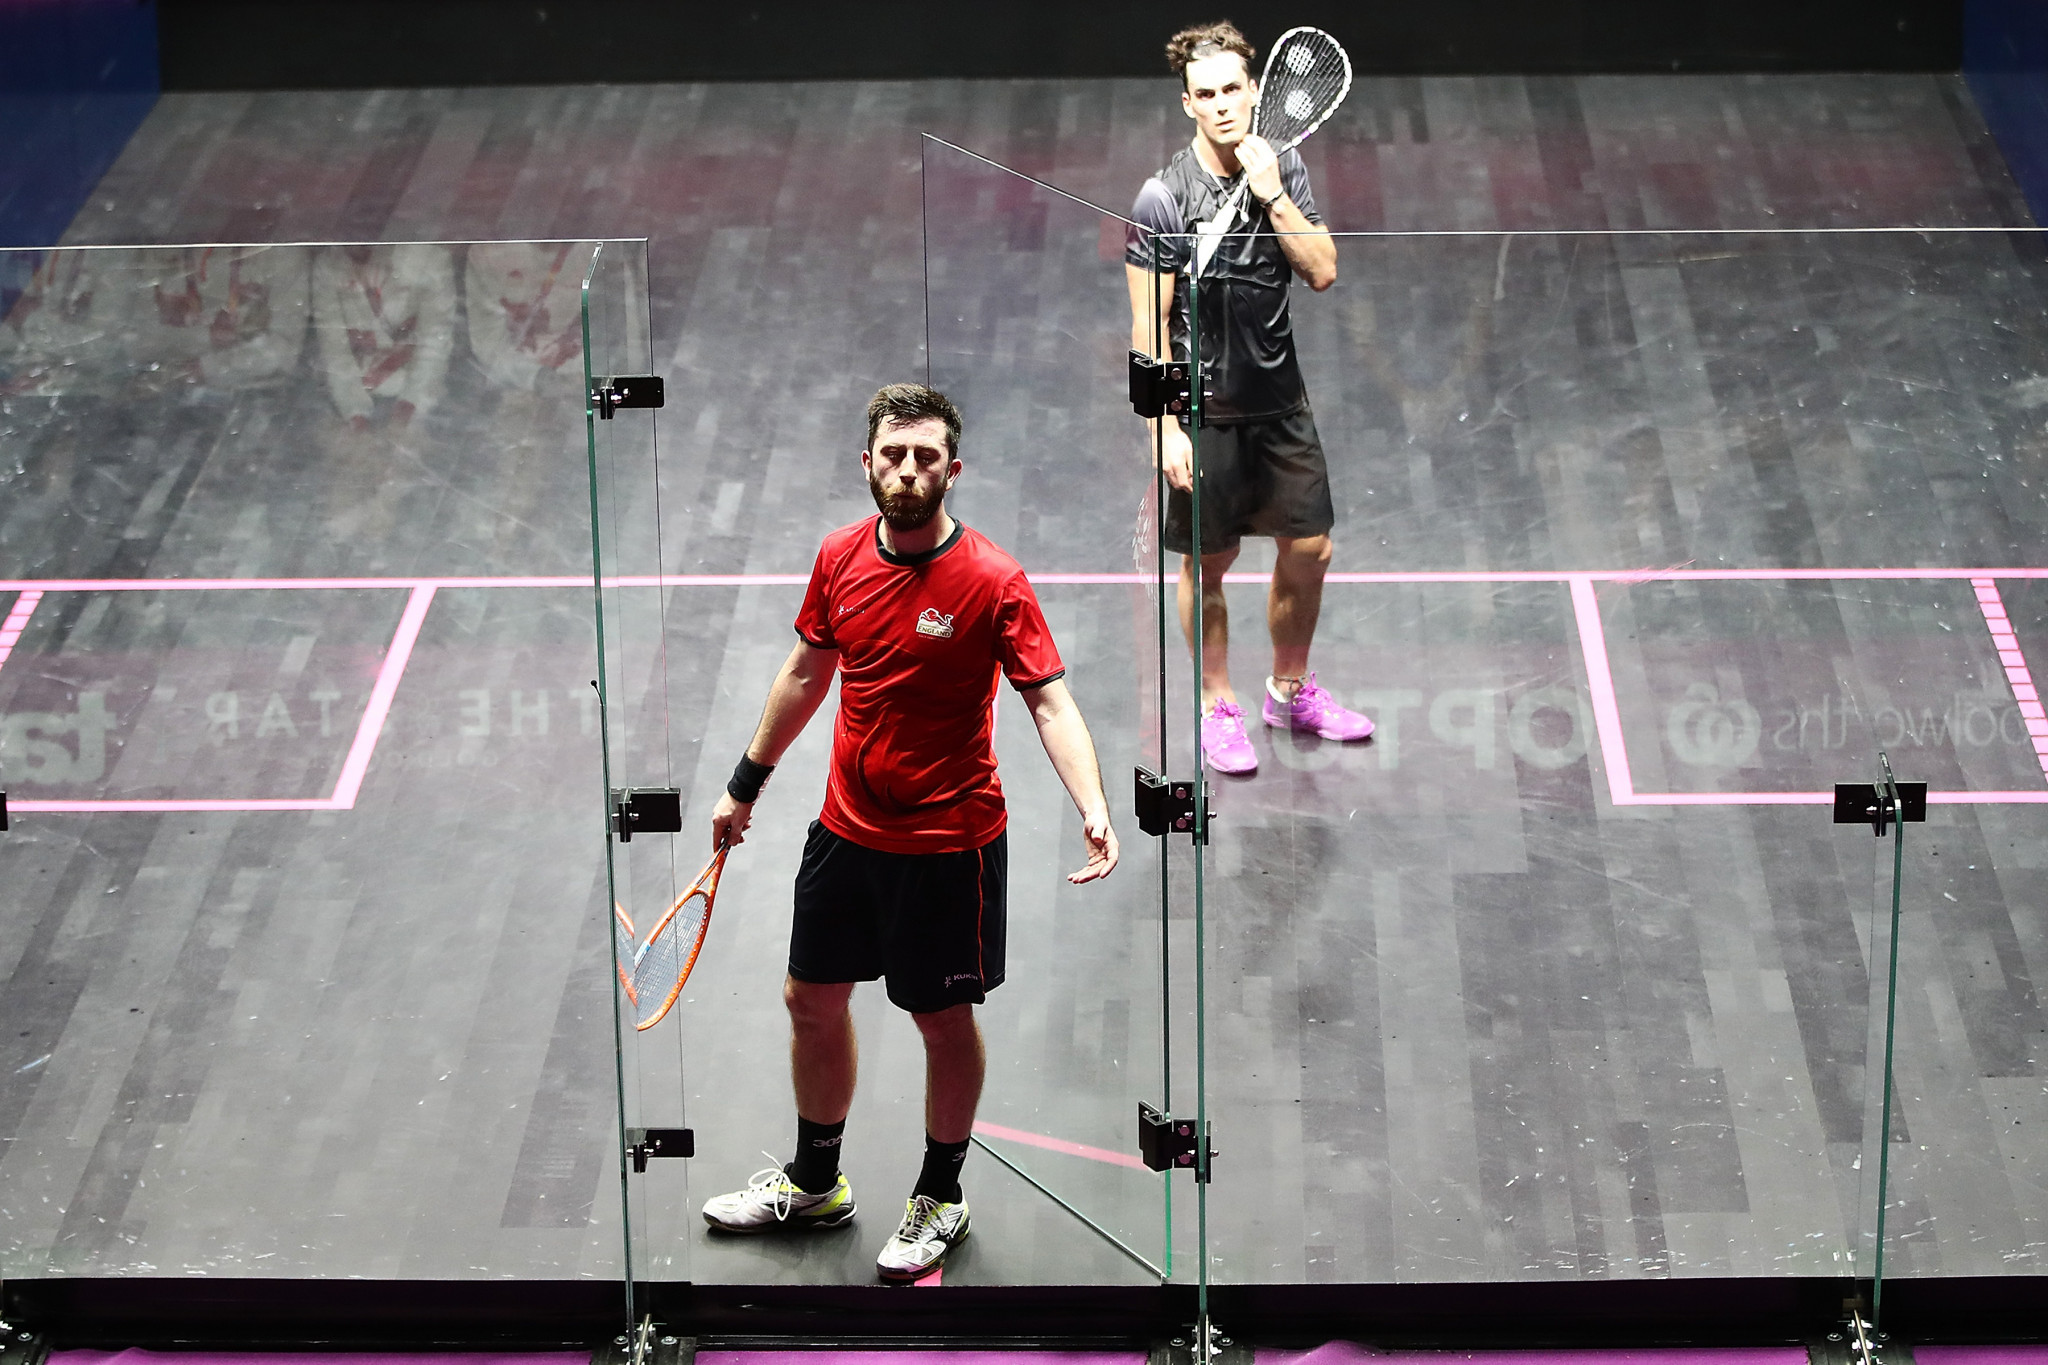 World Squash Federation to debate player dissent at AGM in Cape Town